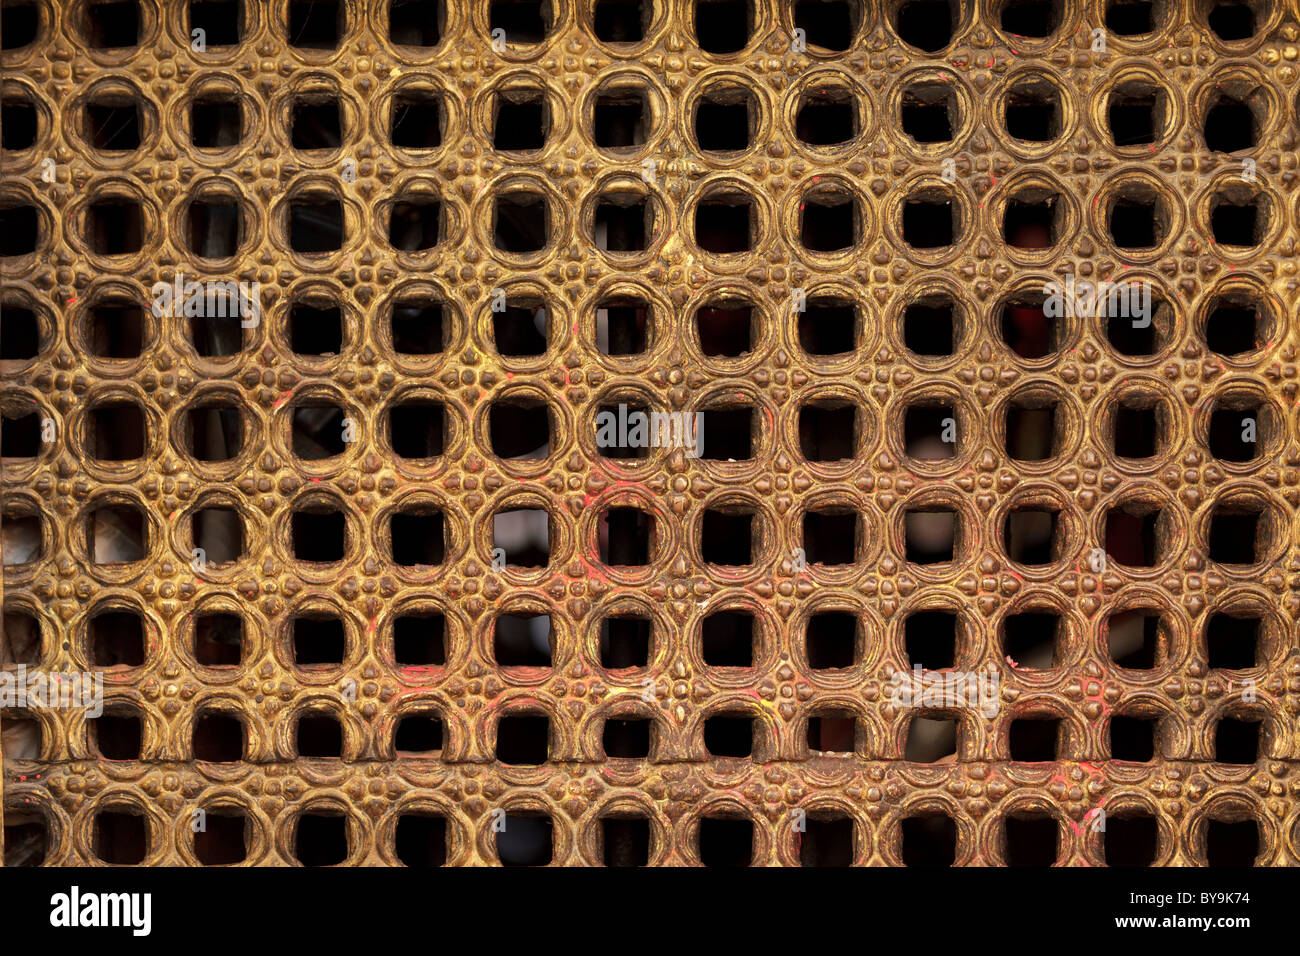 carved wooden temple grid in Nepal - Stock Image